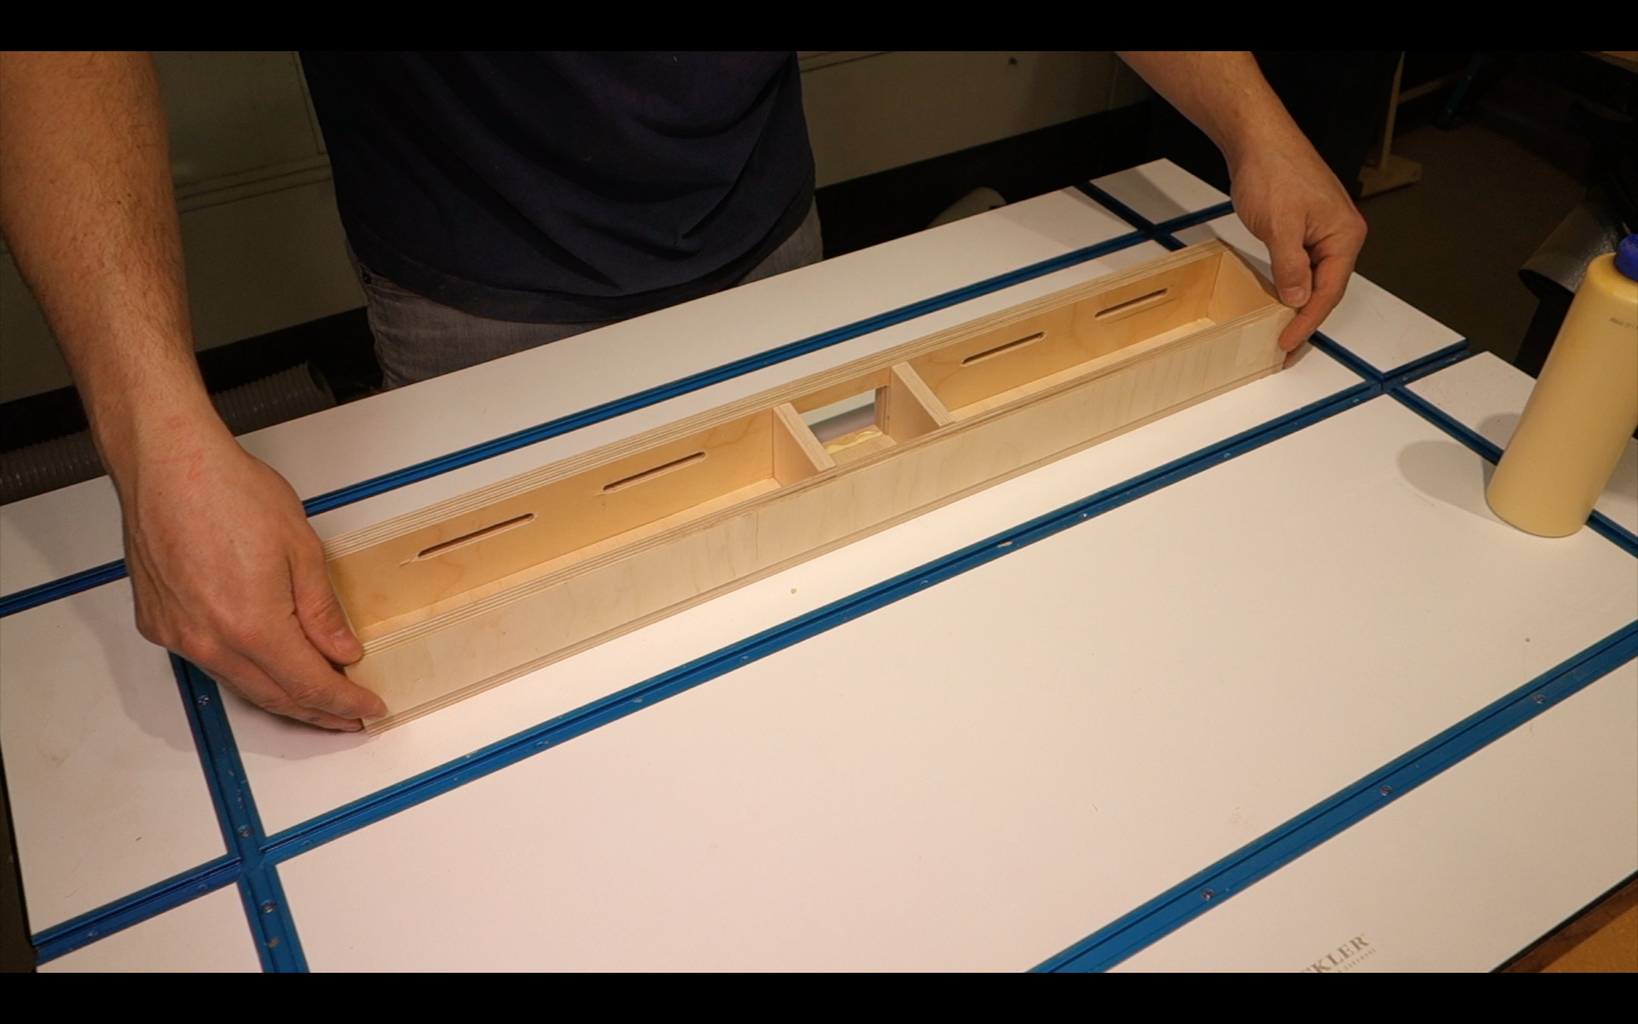 Cutting the Angled Supports